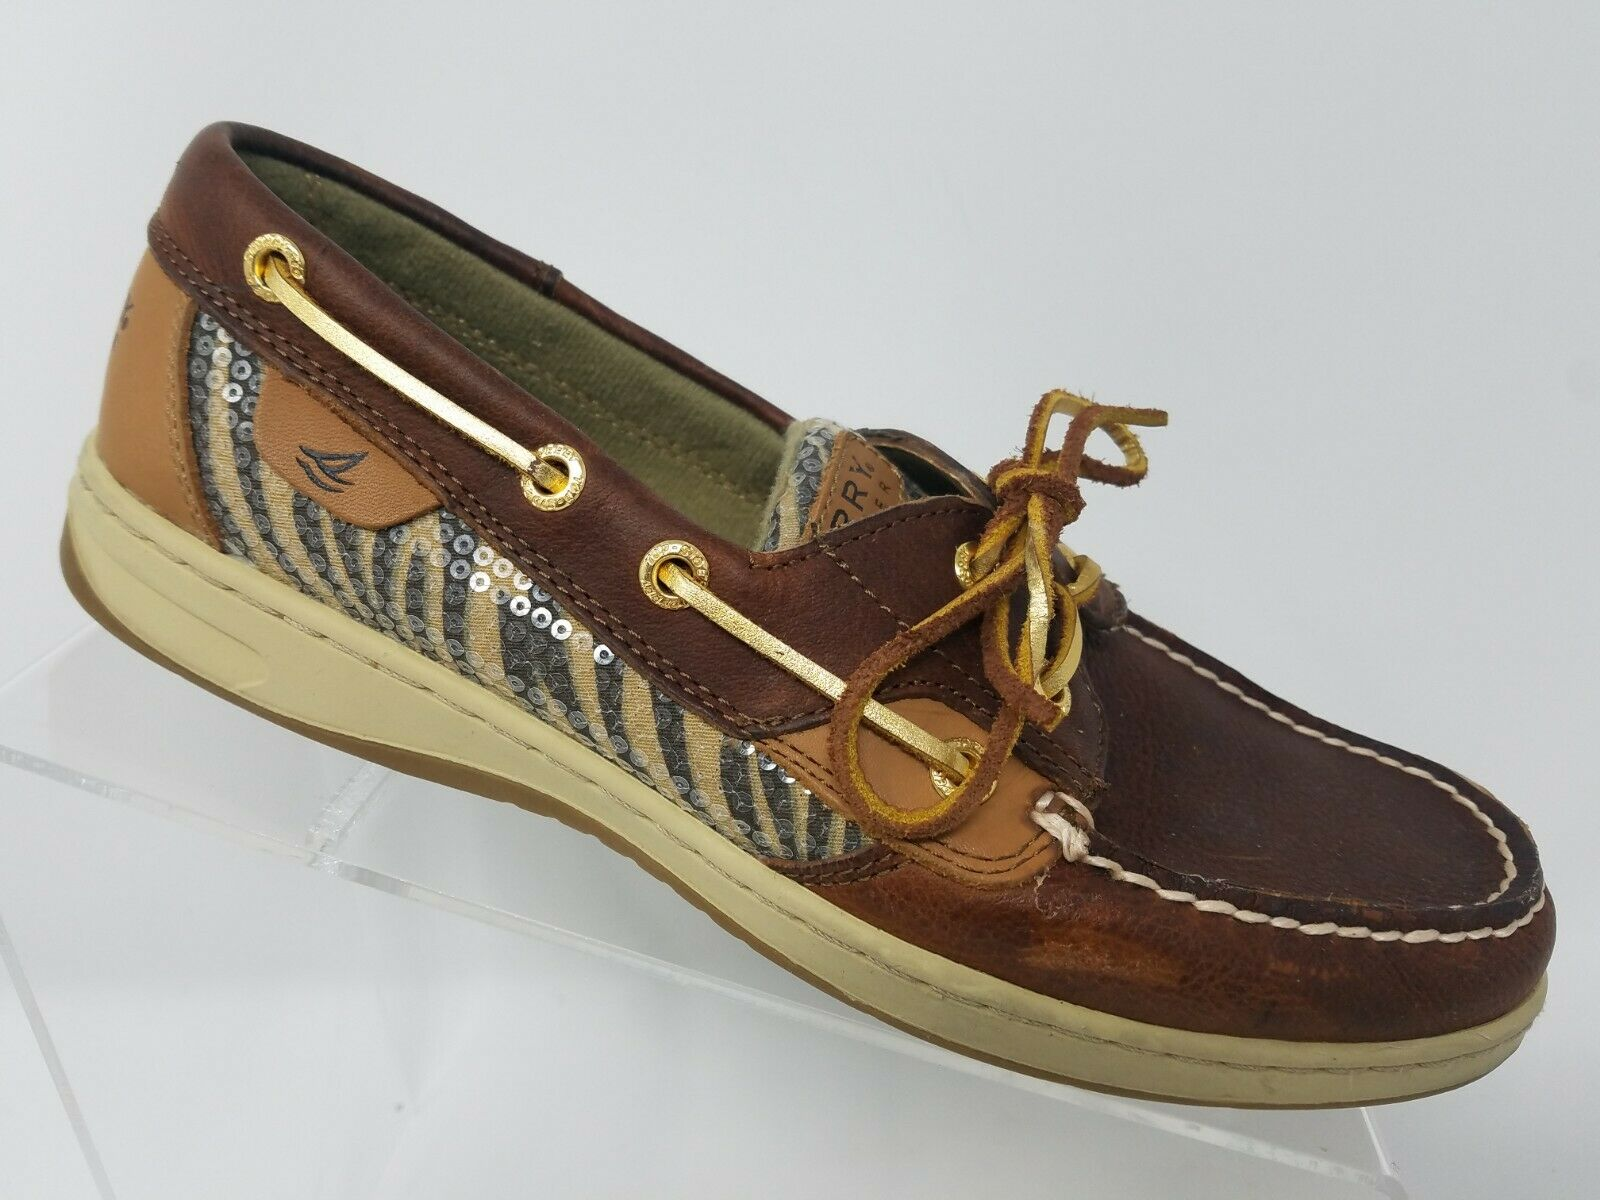 Sperry Top Sider blueefish Womens Slip On Boat shoes Size 8 Brown gold Leather